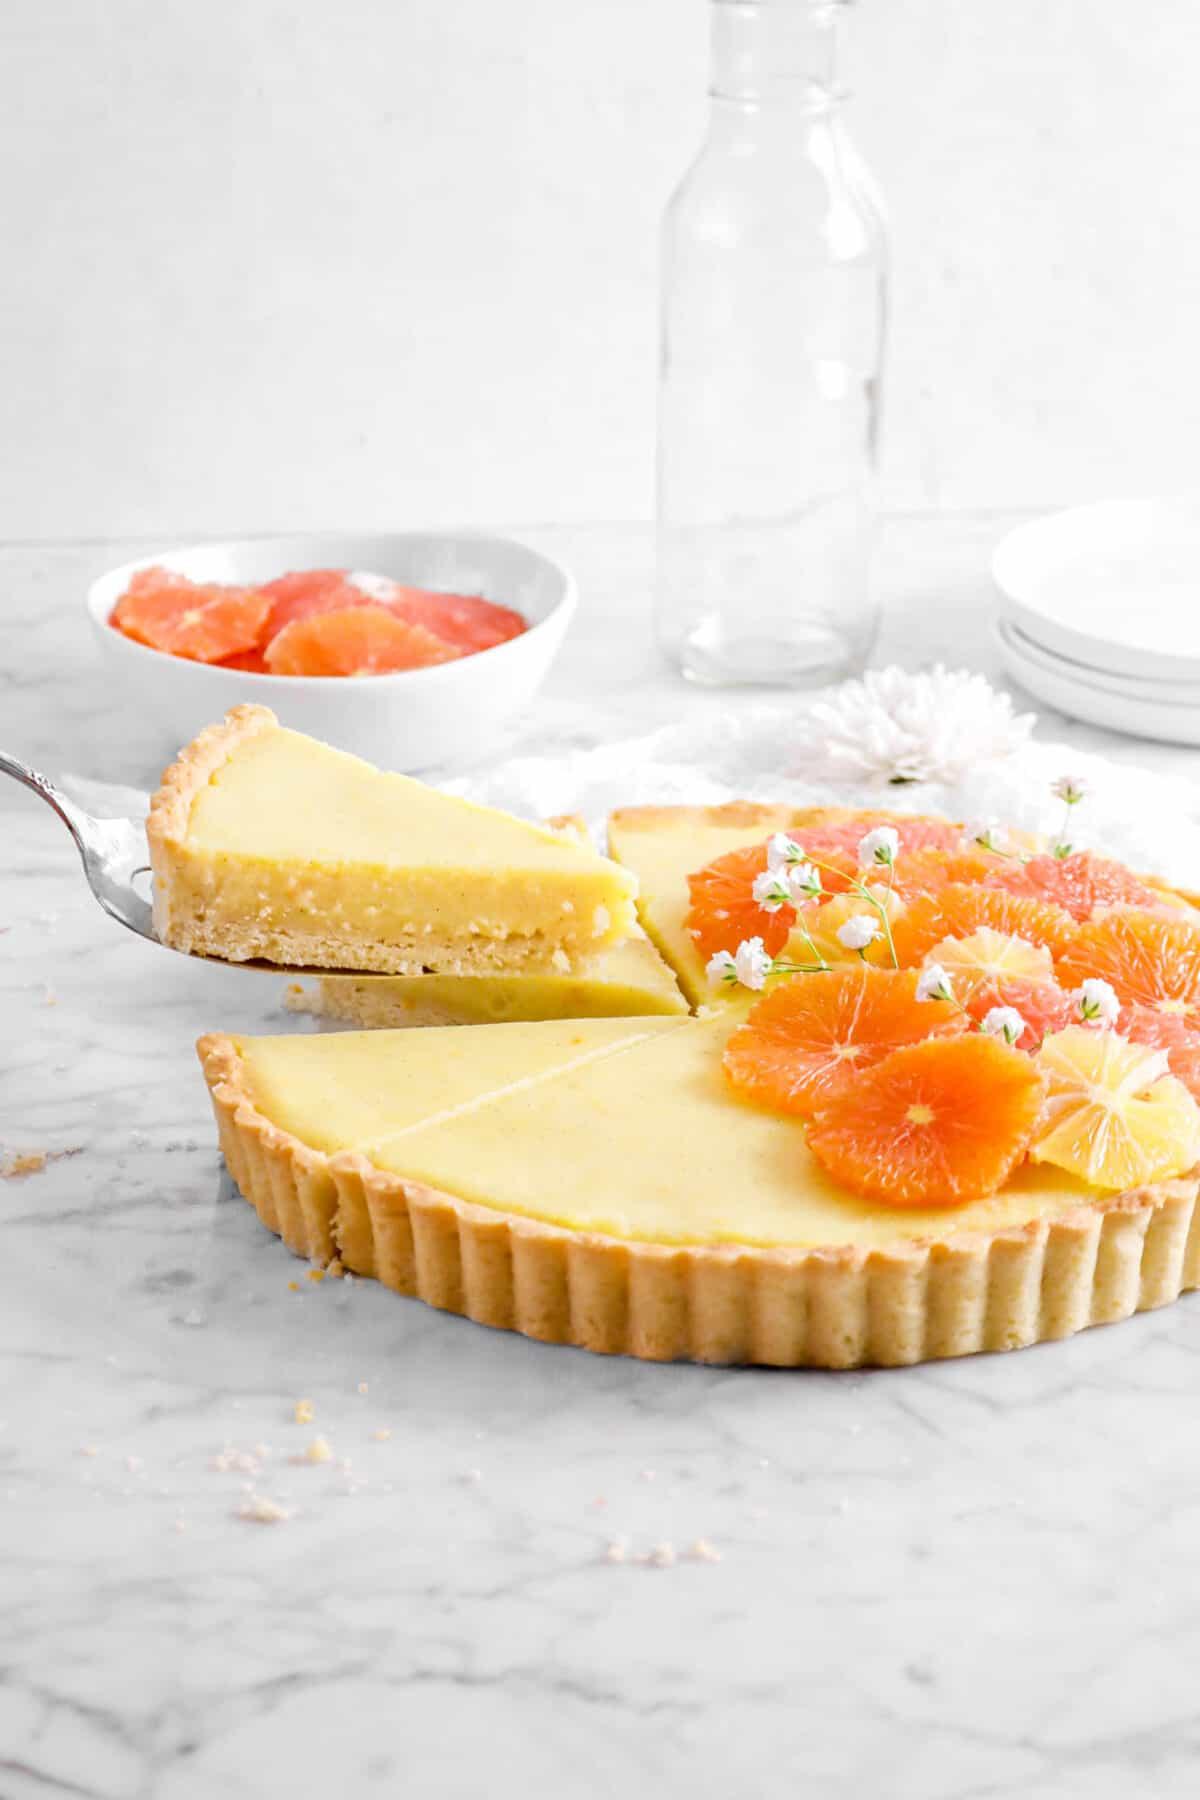 slice of citrus tart being held above the rest of the tart with bowl of citrus, glass, and stacked plates behind